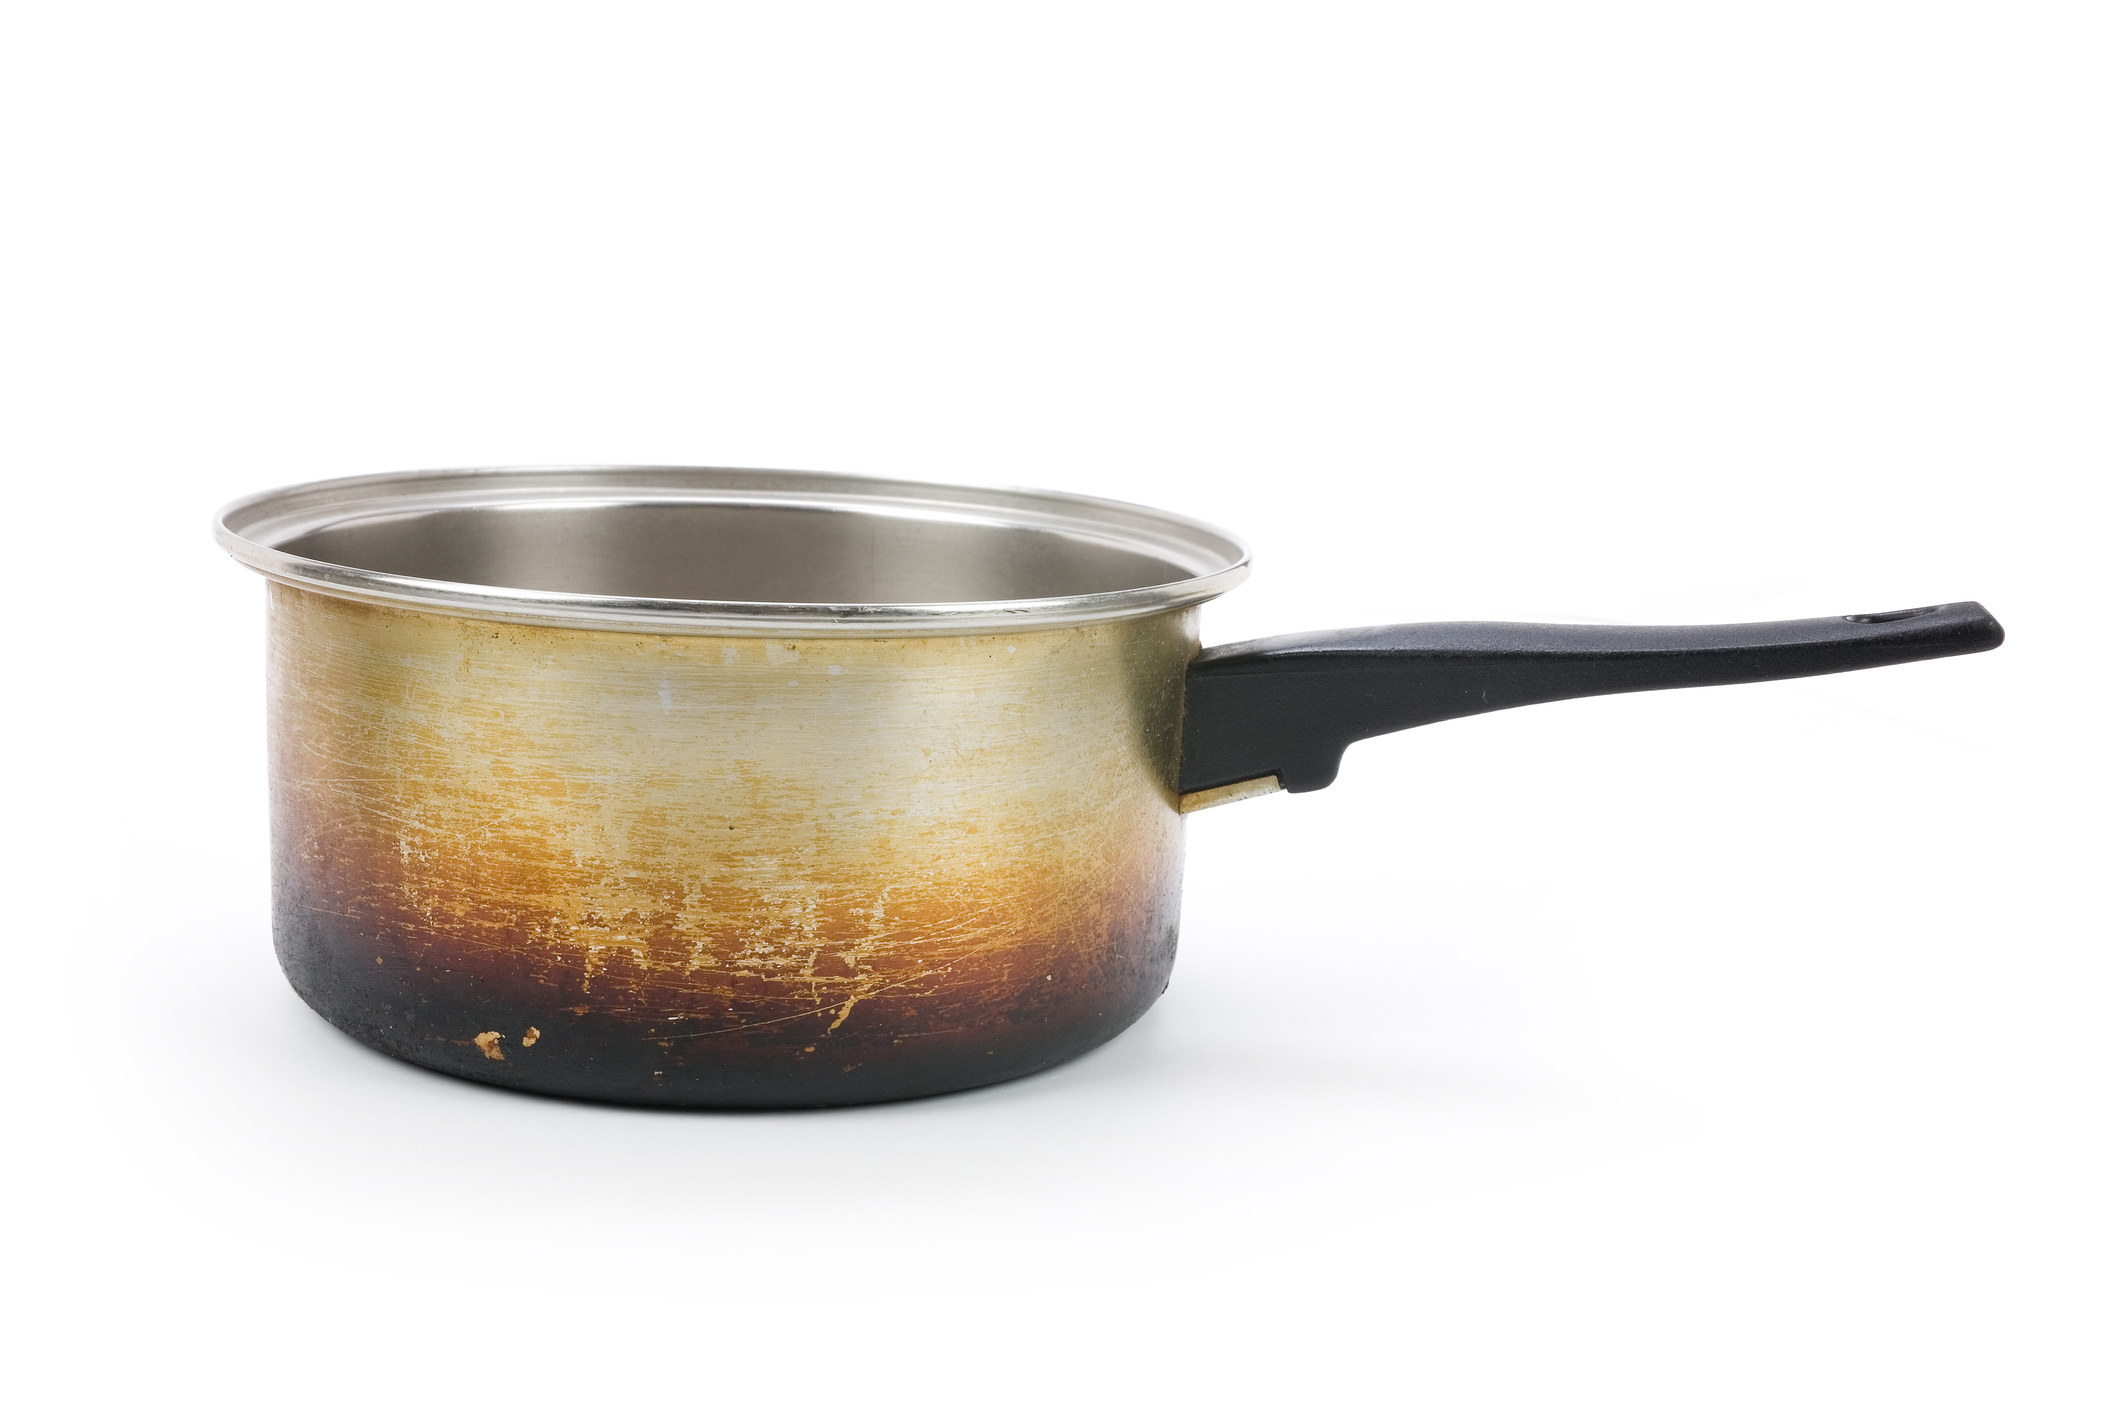 A sauce pan that has a burned bottom from years of use